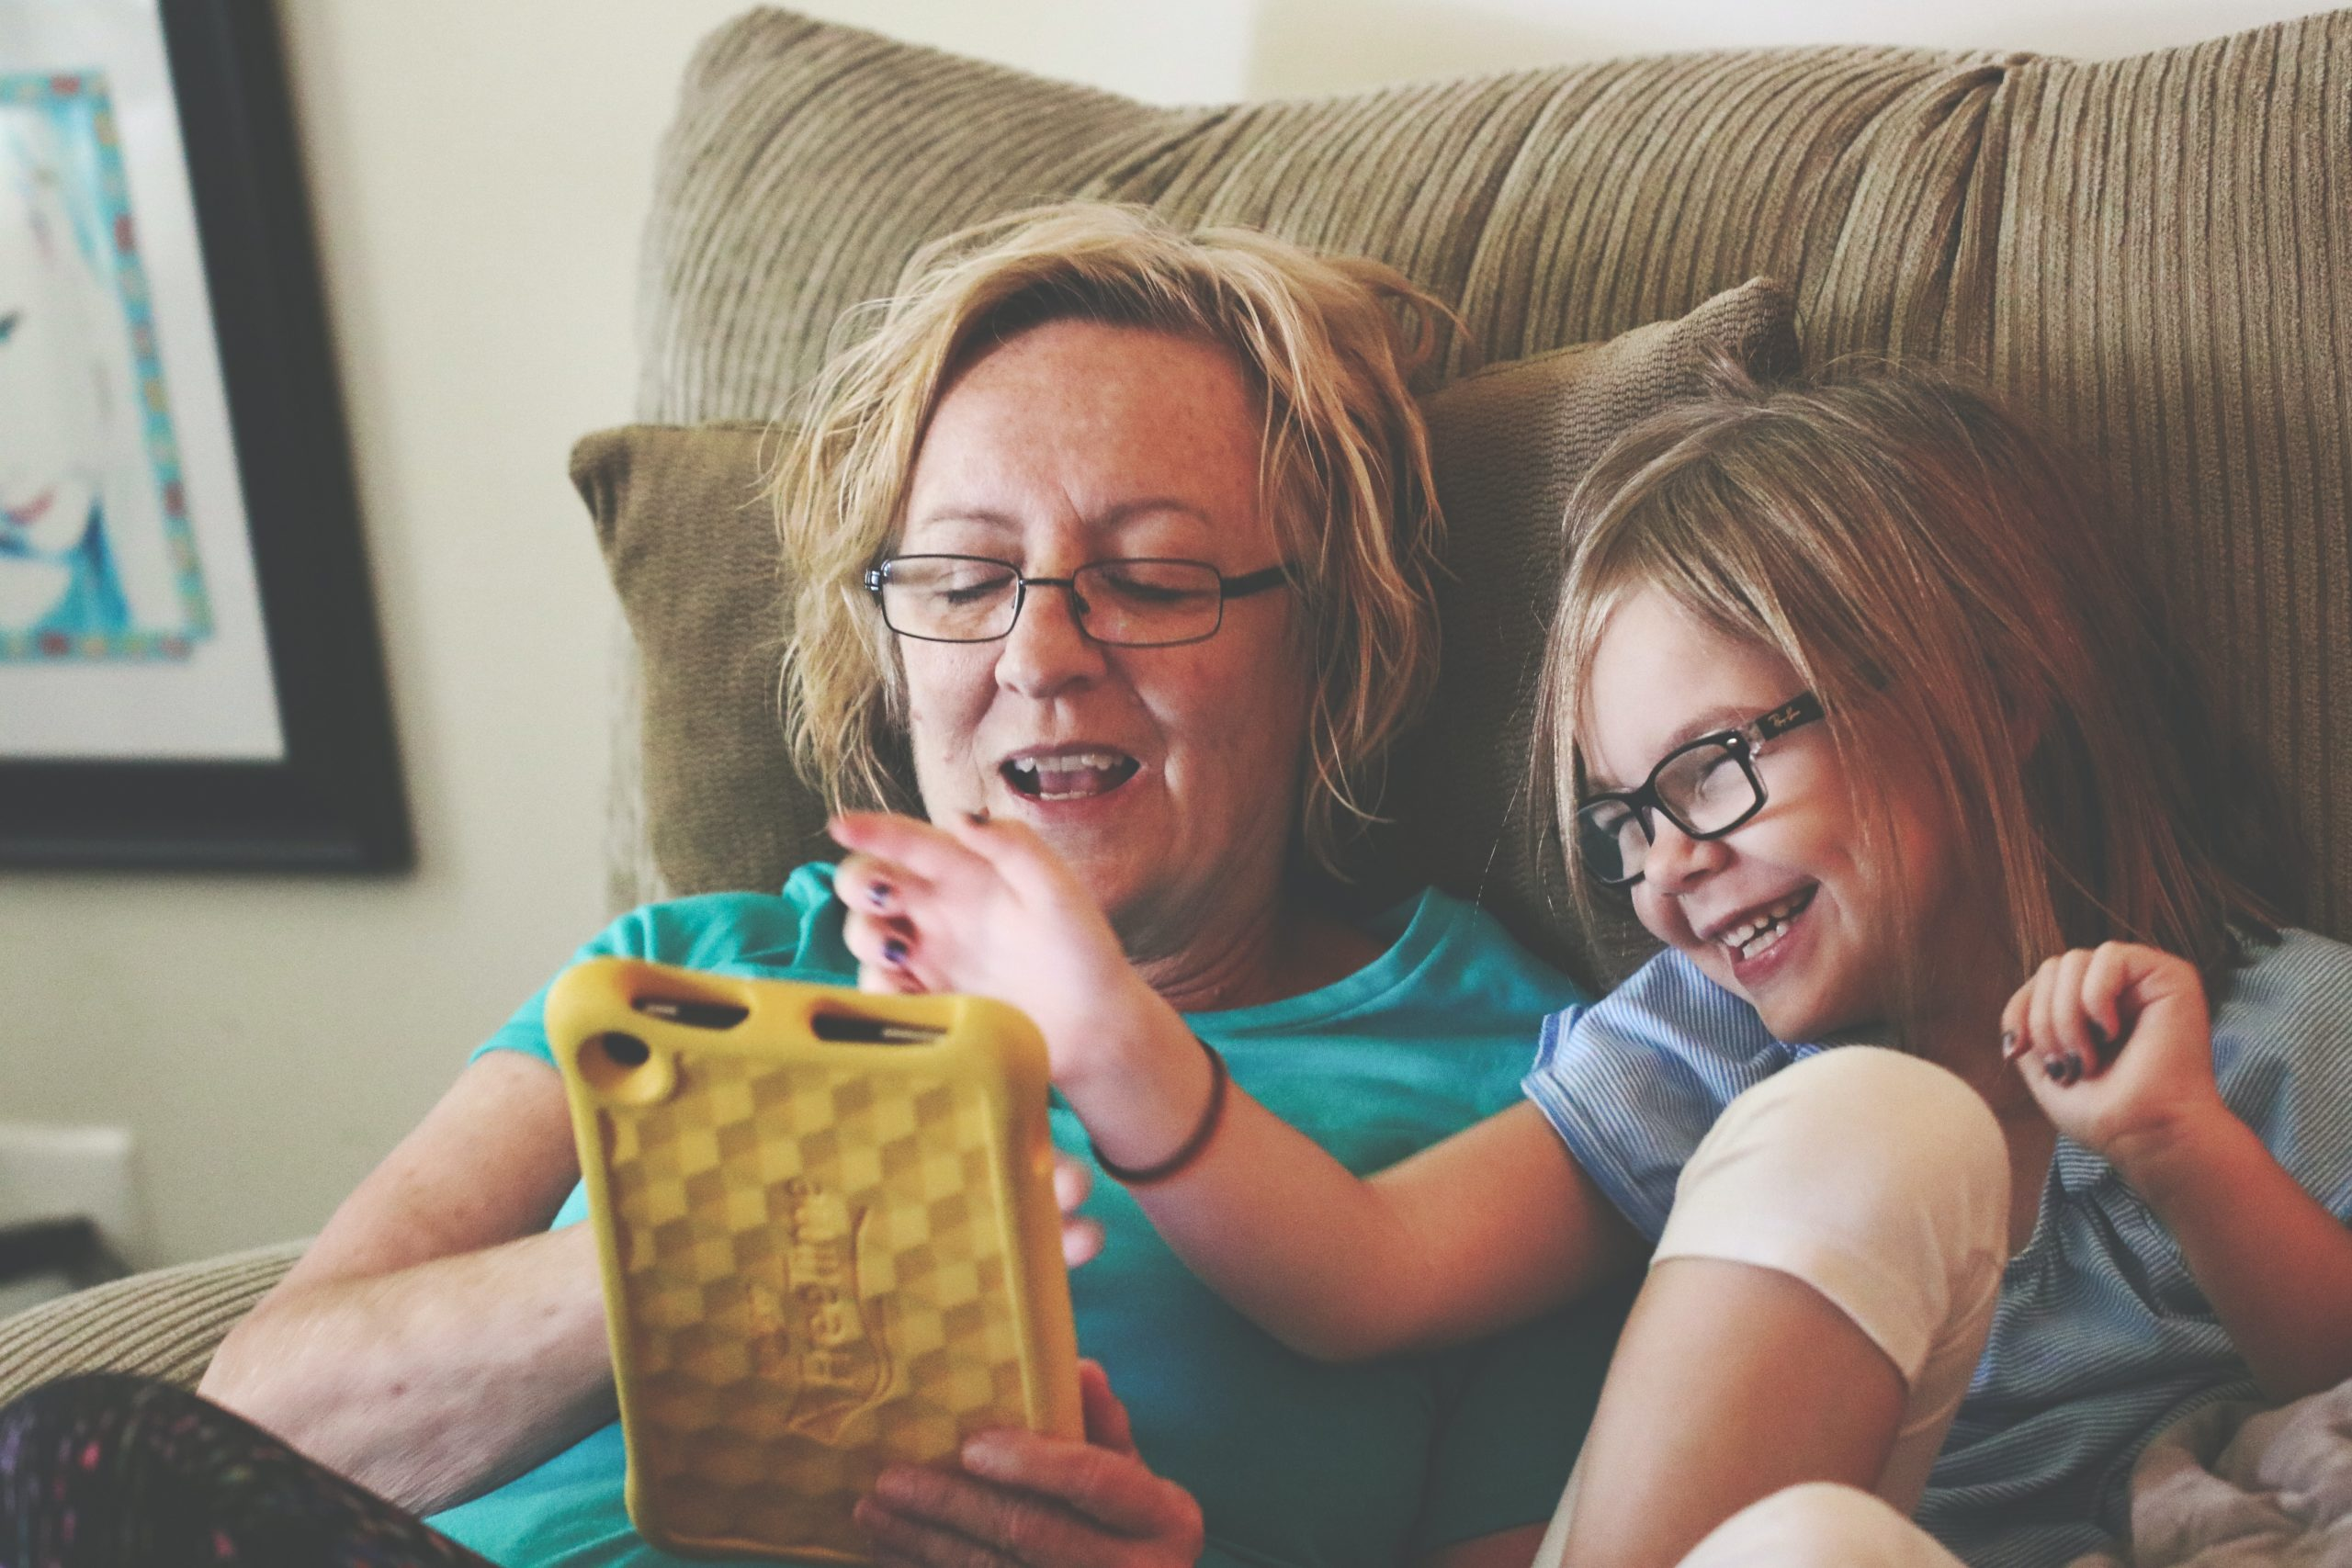 Mother and daughter playing a game on a phone